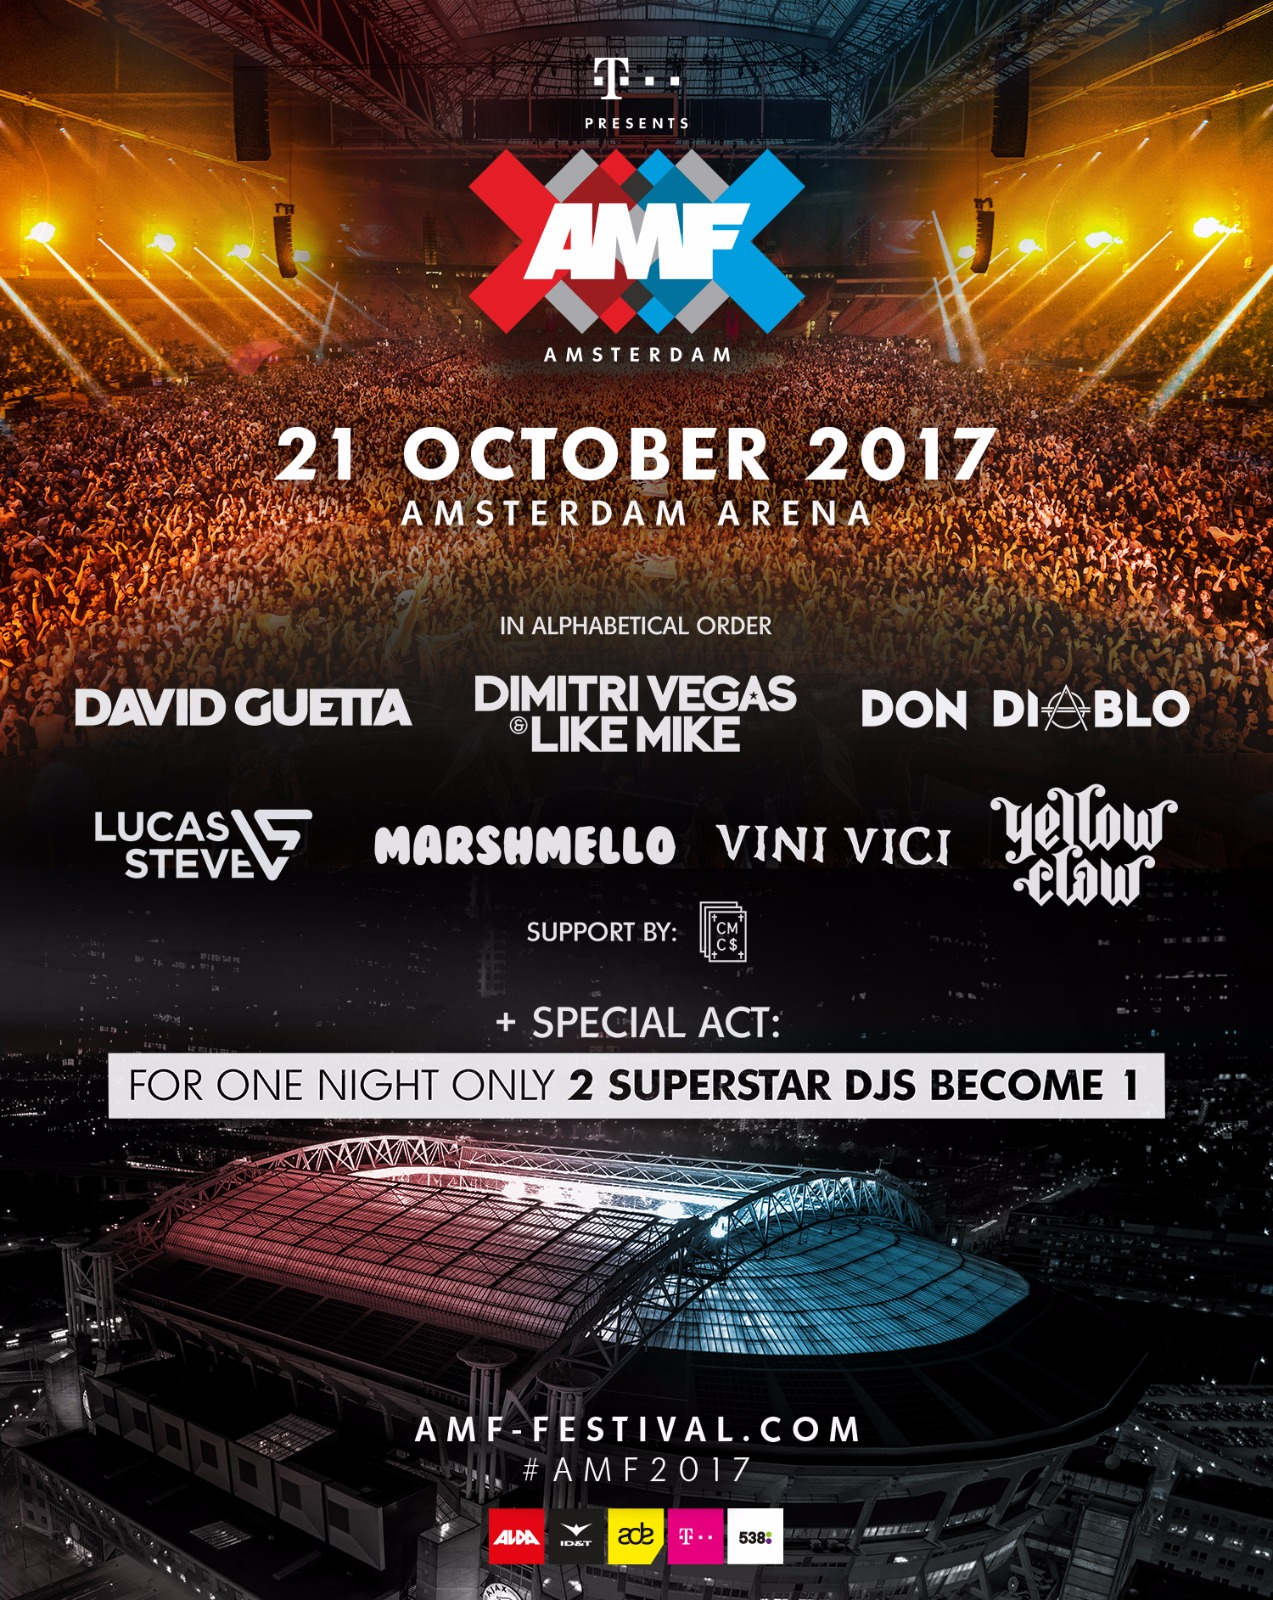 download → Armin Van Buuren B2B Hardwell, Dimitri Vegas & Like Mike, Marshmello, Yellow Claw, Vini Vici, Don Diablo - live at Amsterdam Music Festival (ADE 2017) - 21-Oct-2017